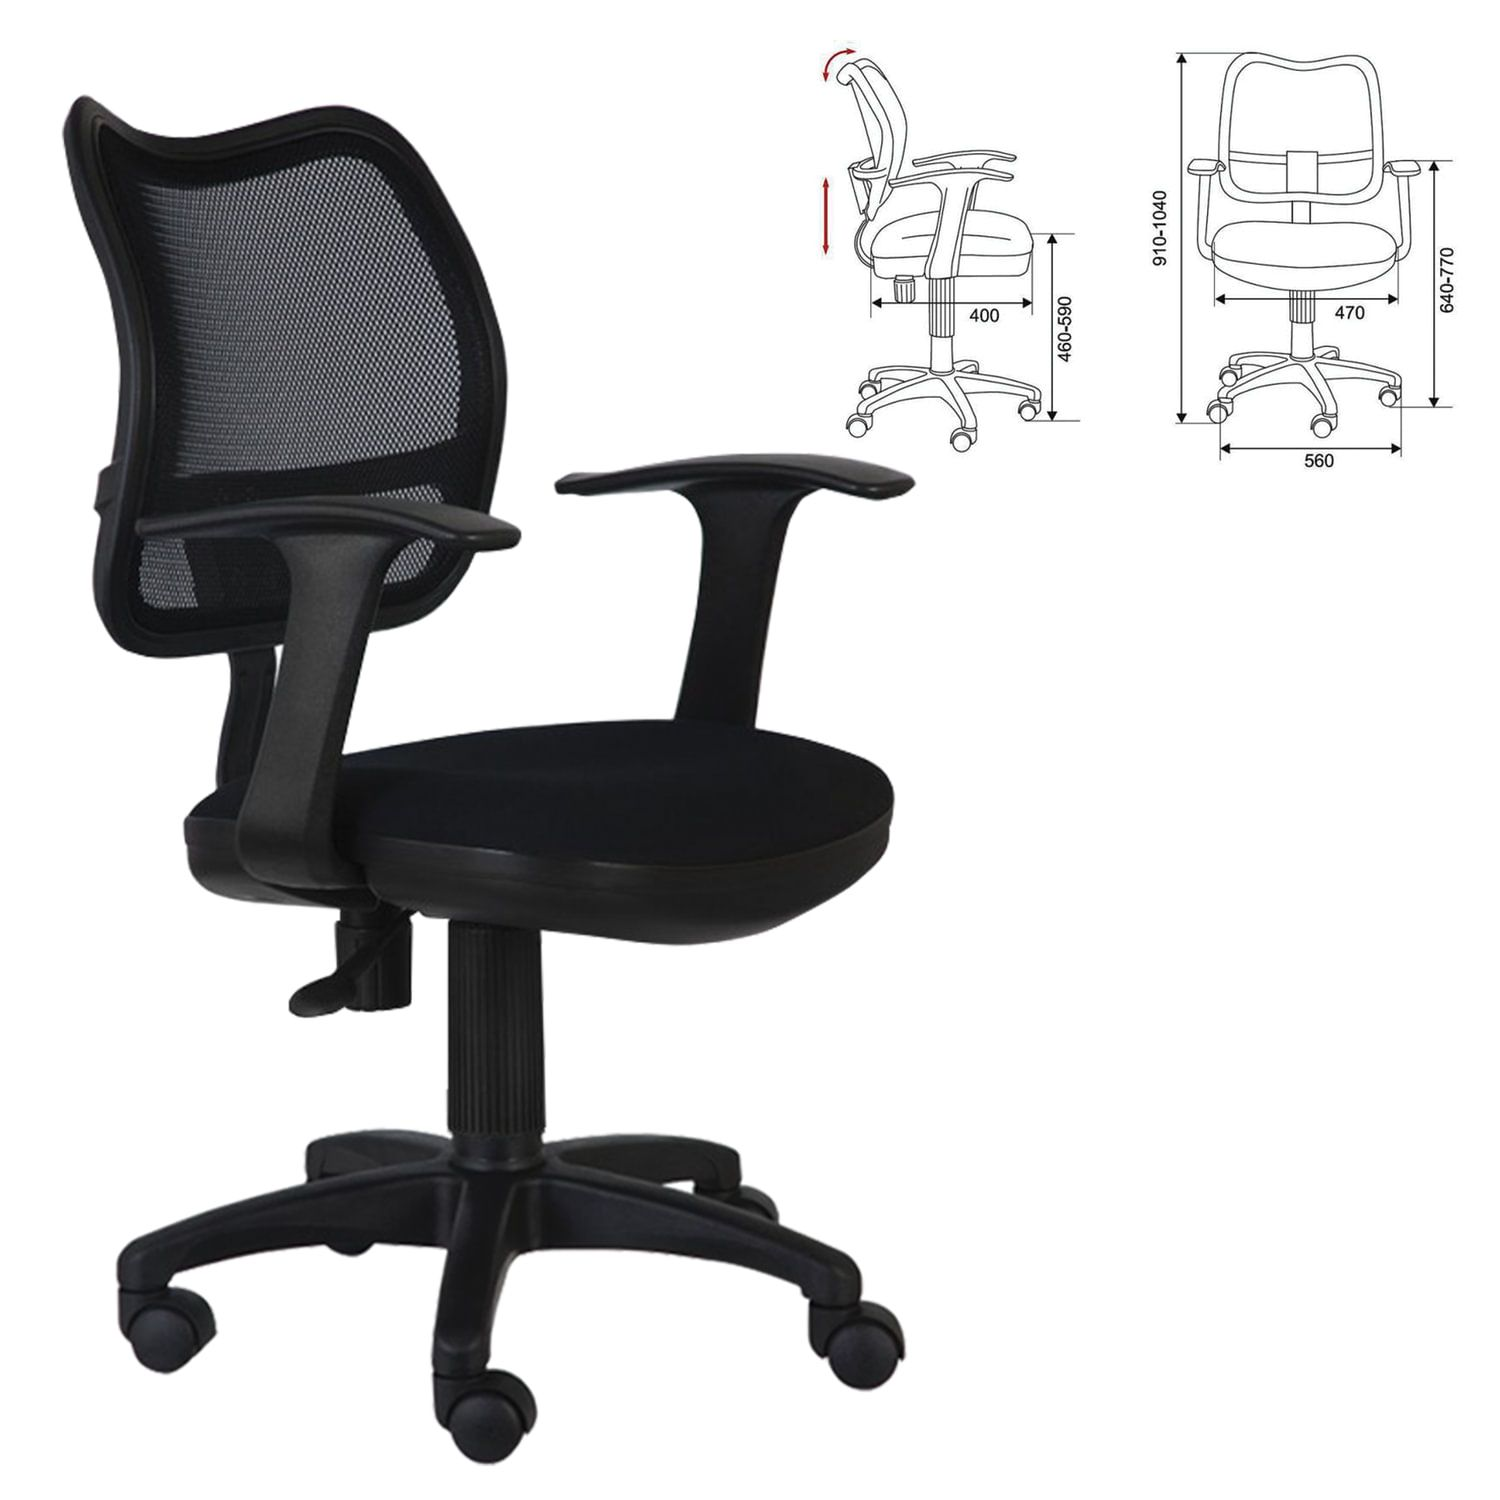 Chair CH-797AXSN, with armrests, black